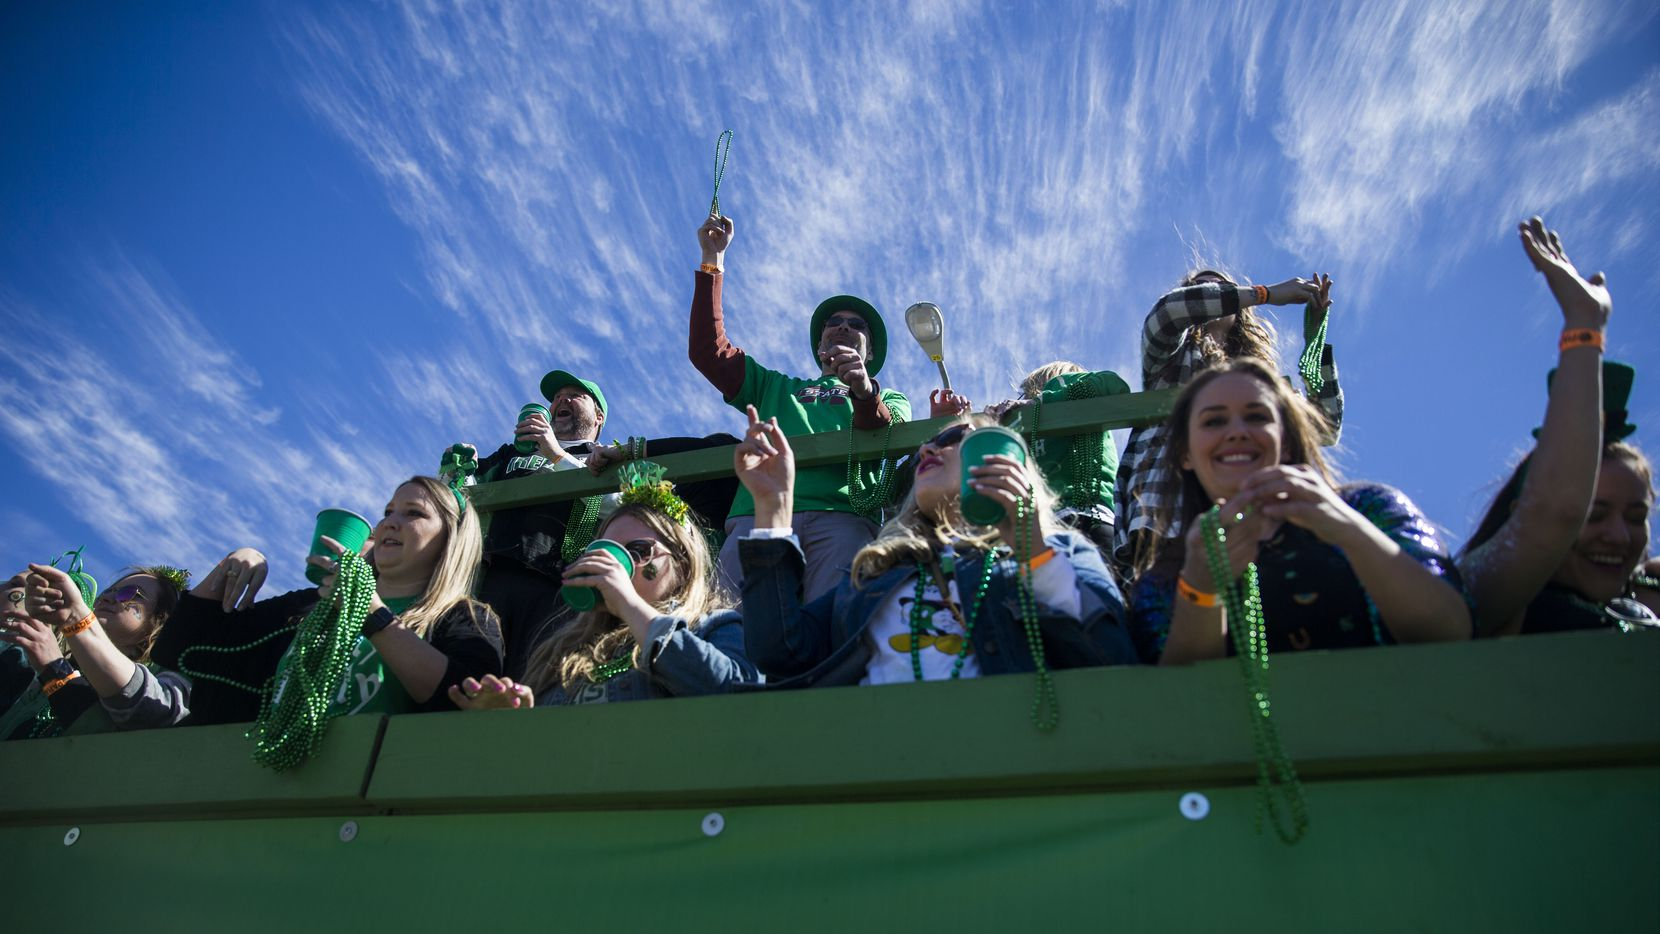 The annual St. Patrick's Day parade on Greenville Avenue, the largest in the Southwest, has been canceled due to concerns about spread of the coronavirus. About 125,000 people were expected to attend.